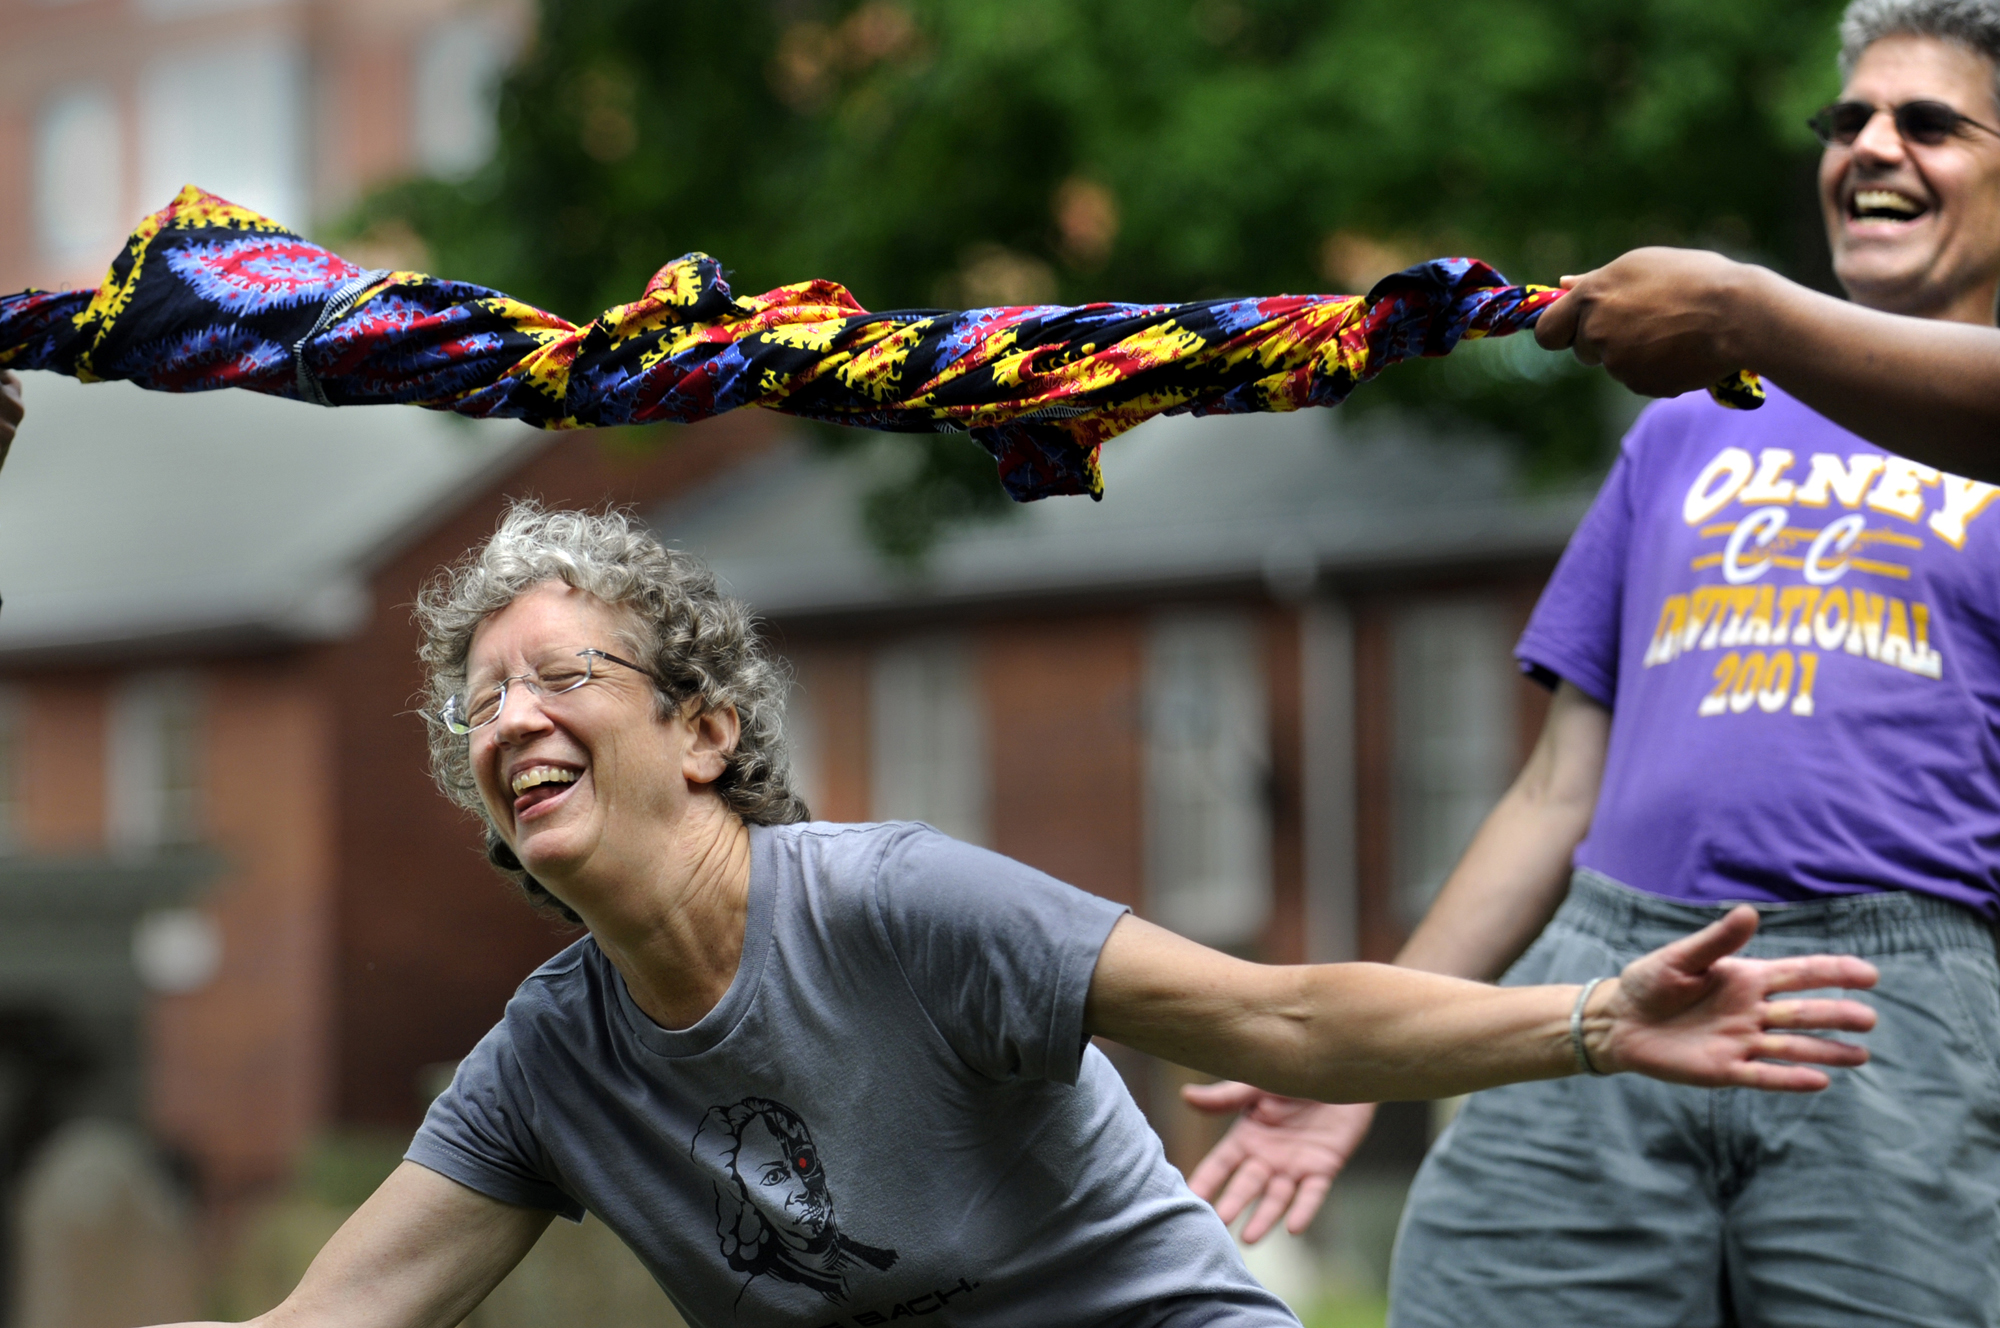 Using traditional African fabric as the bar, Ginny Allen of West Hartford performed the limbo the best she could during a program at the Ancient Burying Ground. At right is Zean Gassmann of Canton.